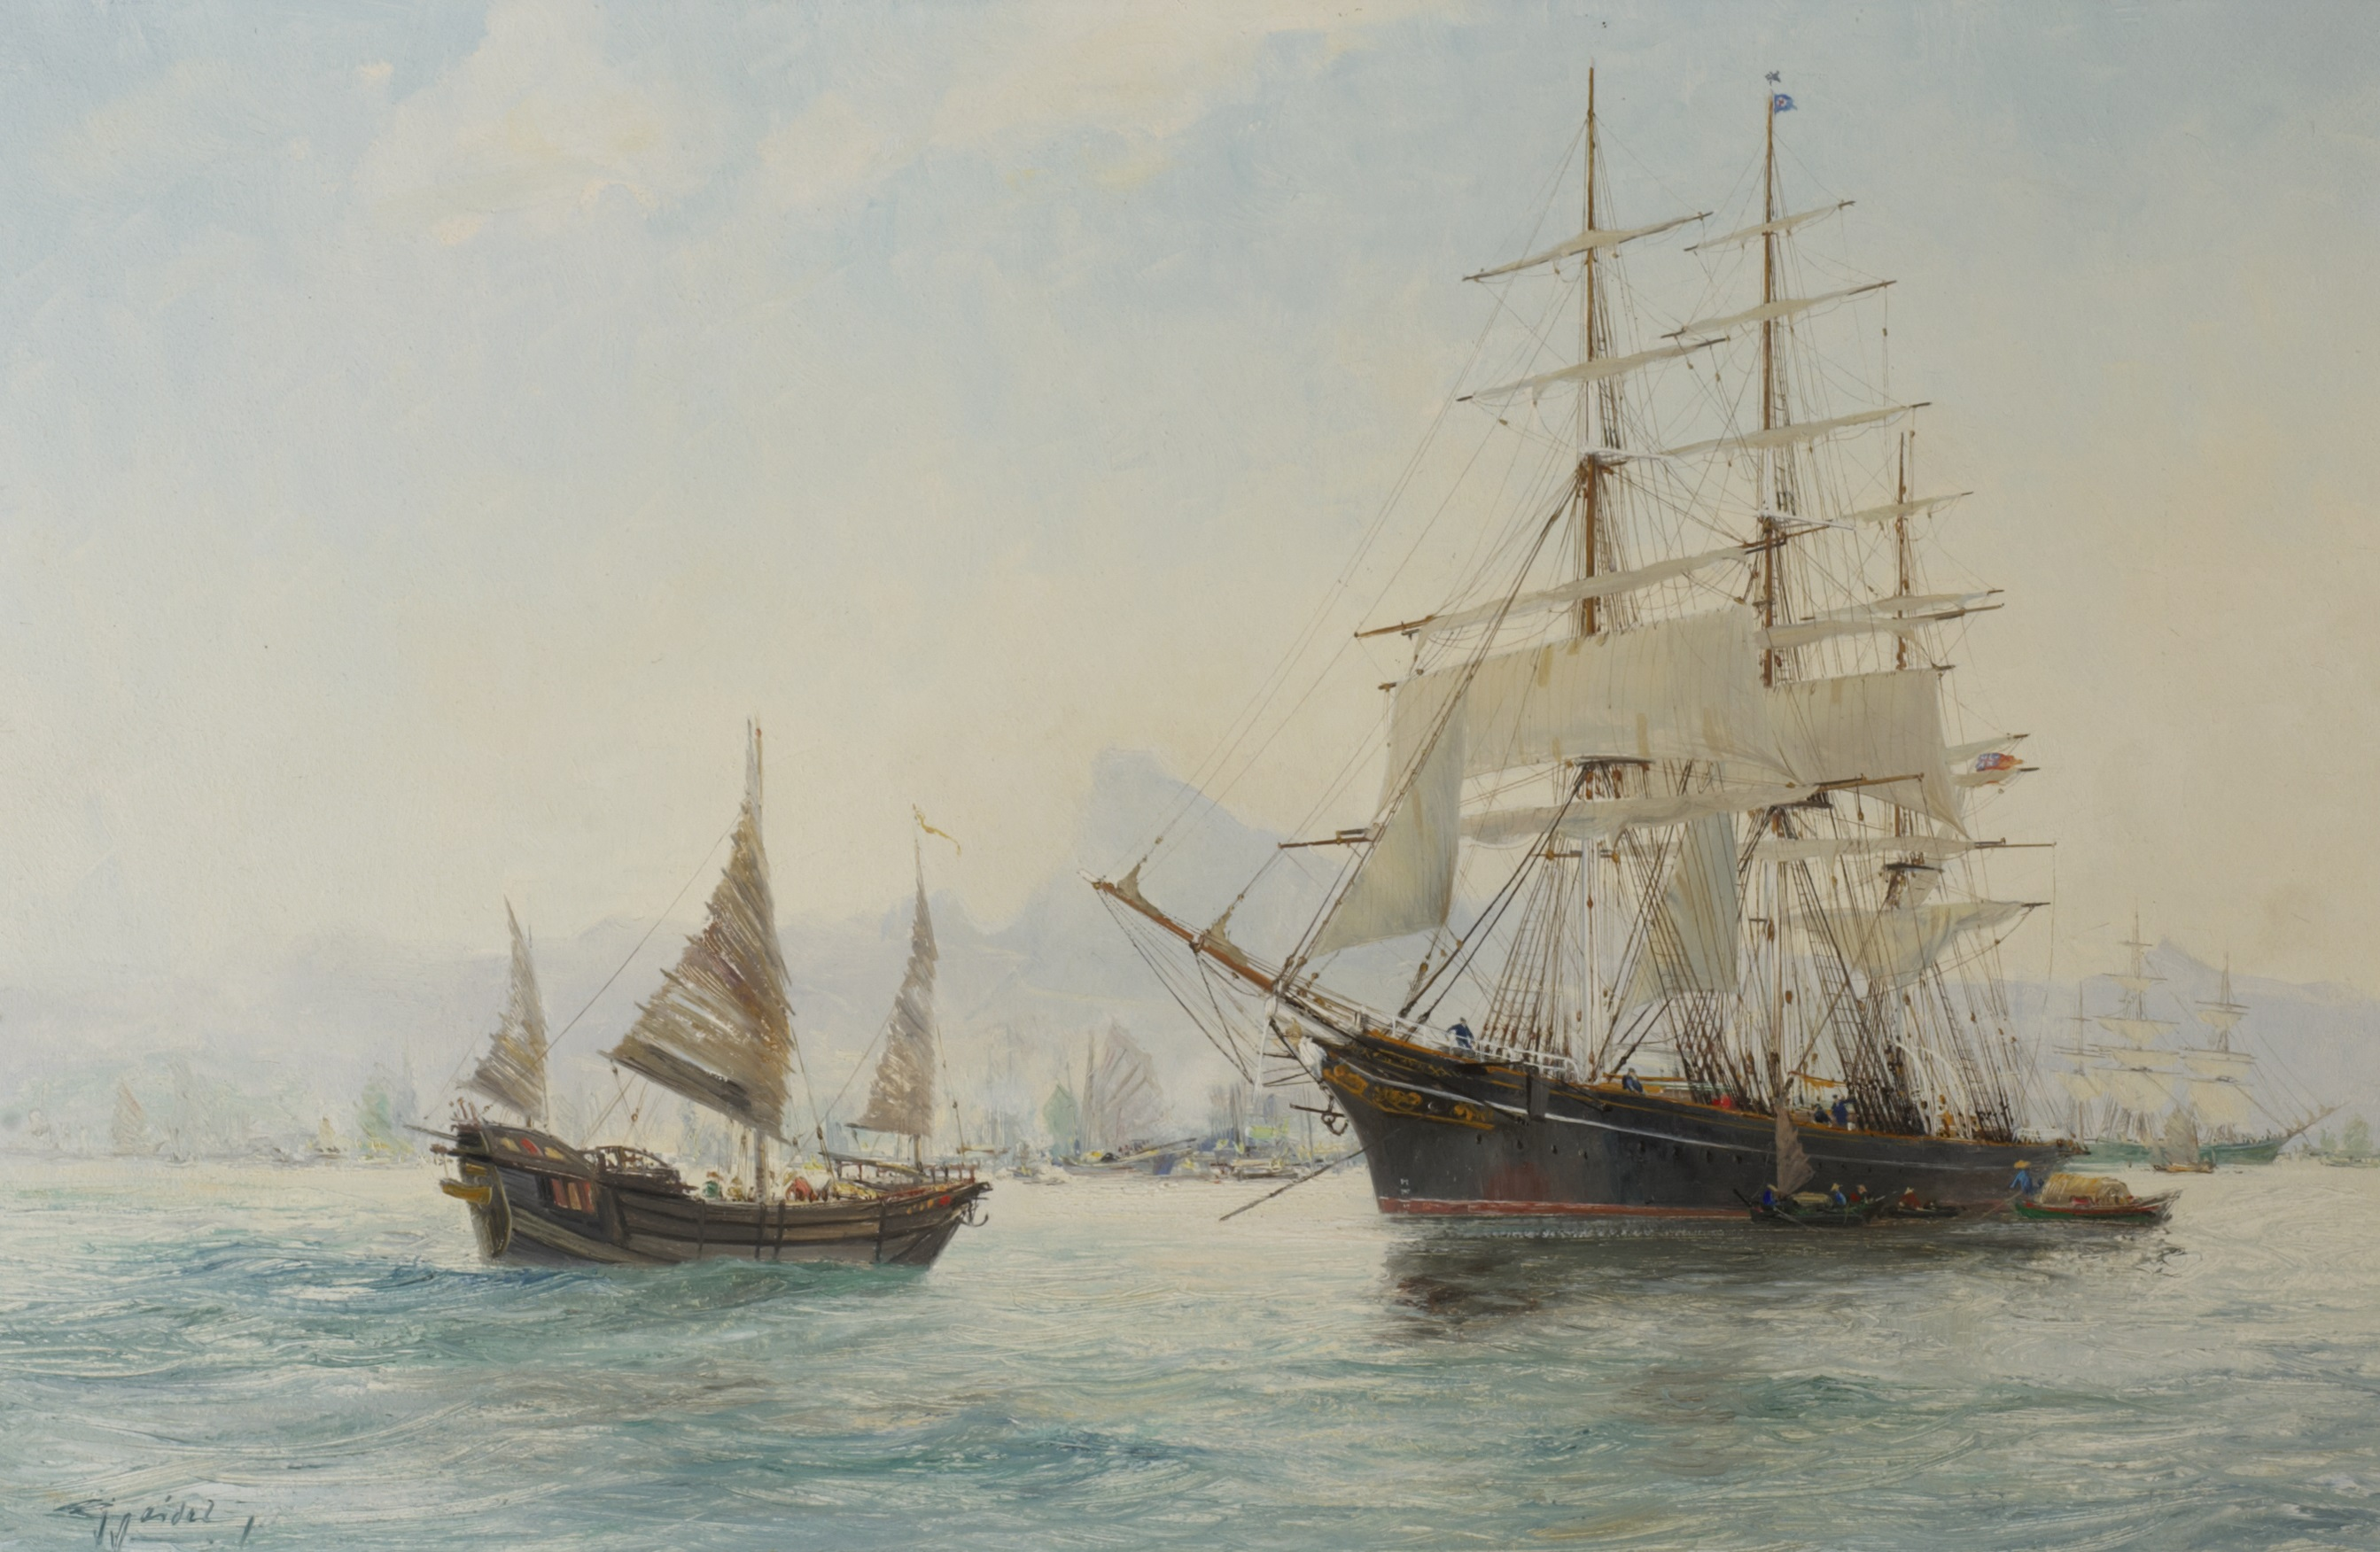 Cutty Sark in China | Royal Museums Greenwich Blog